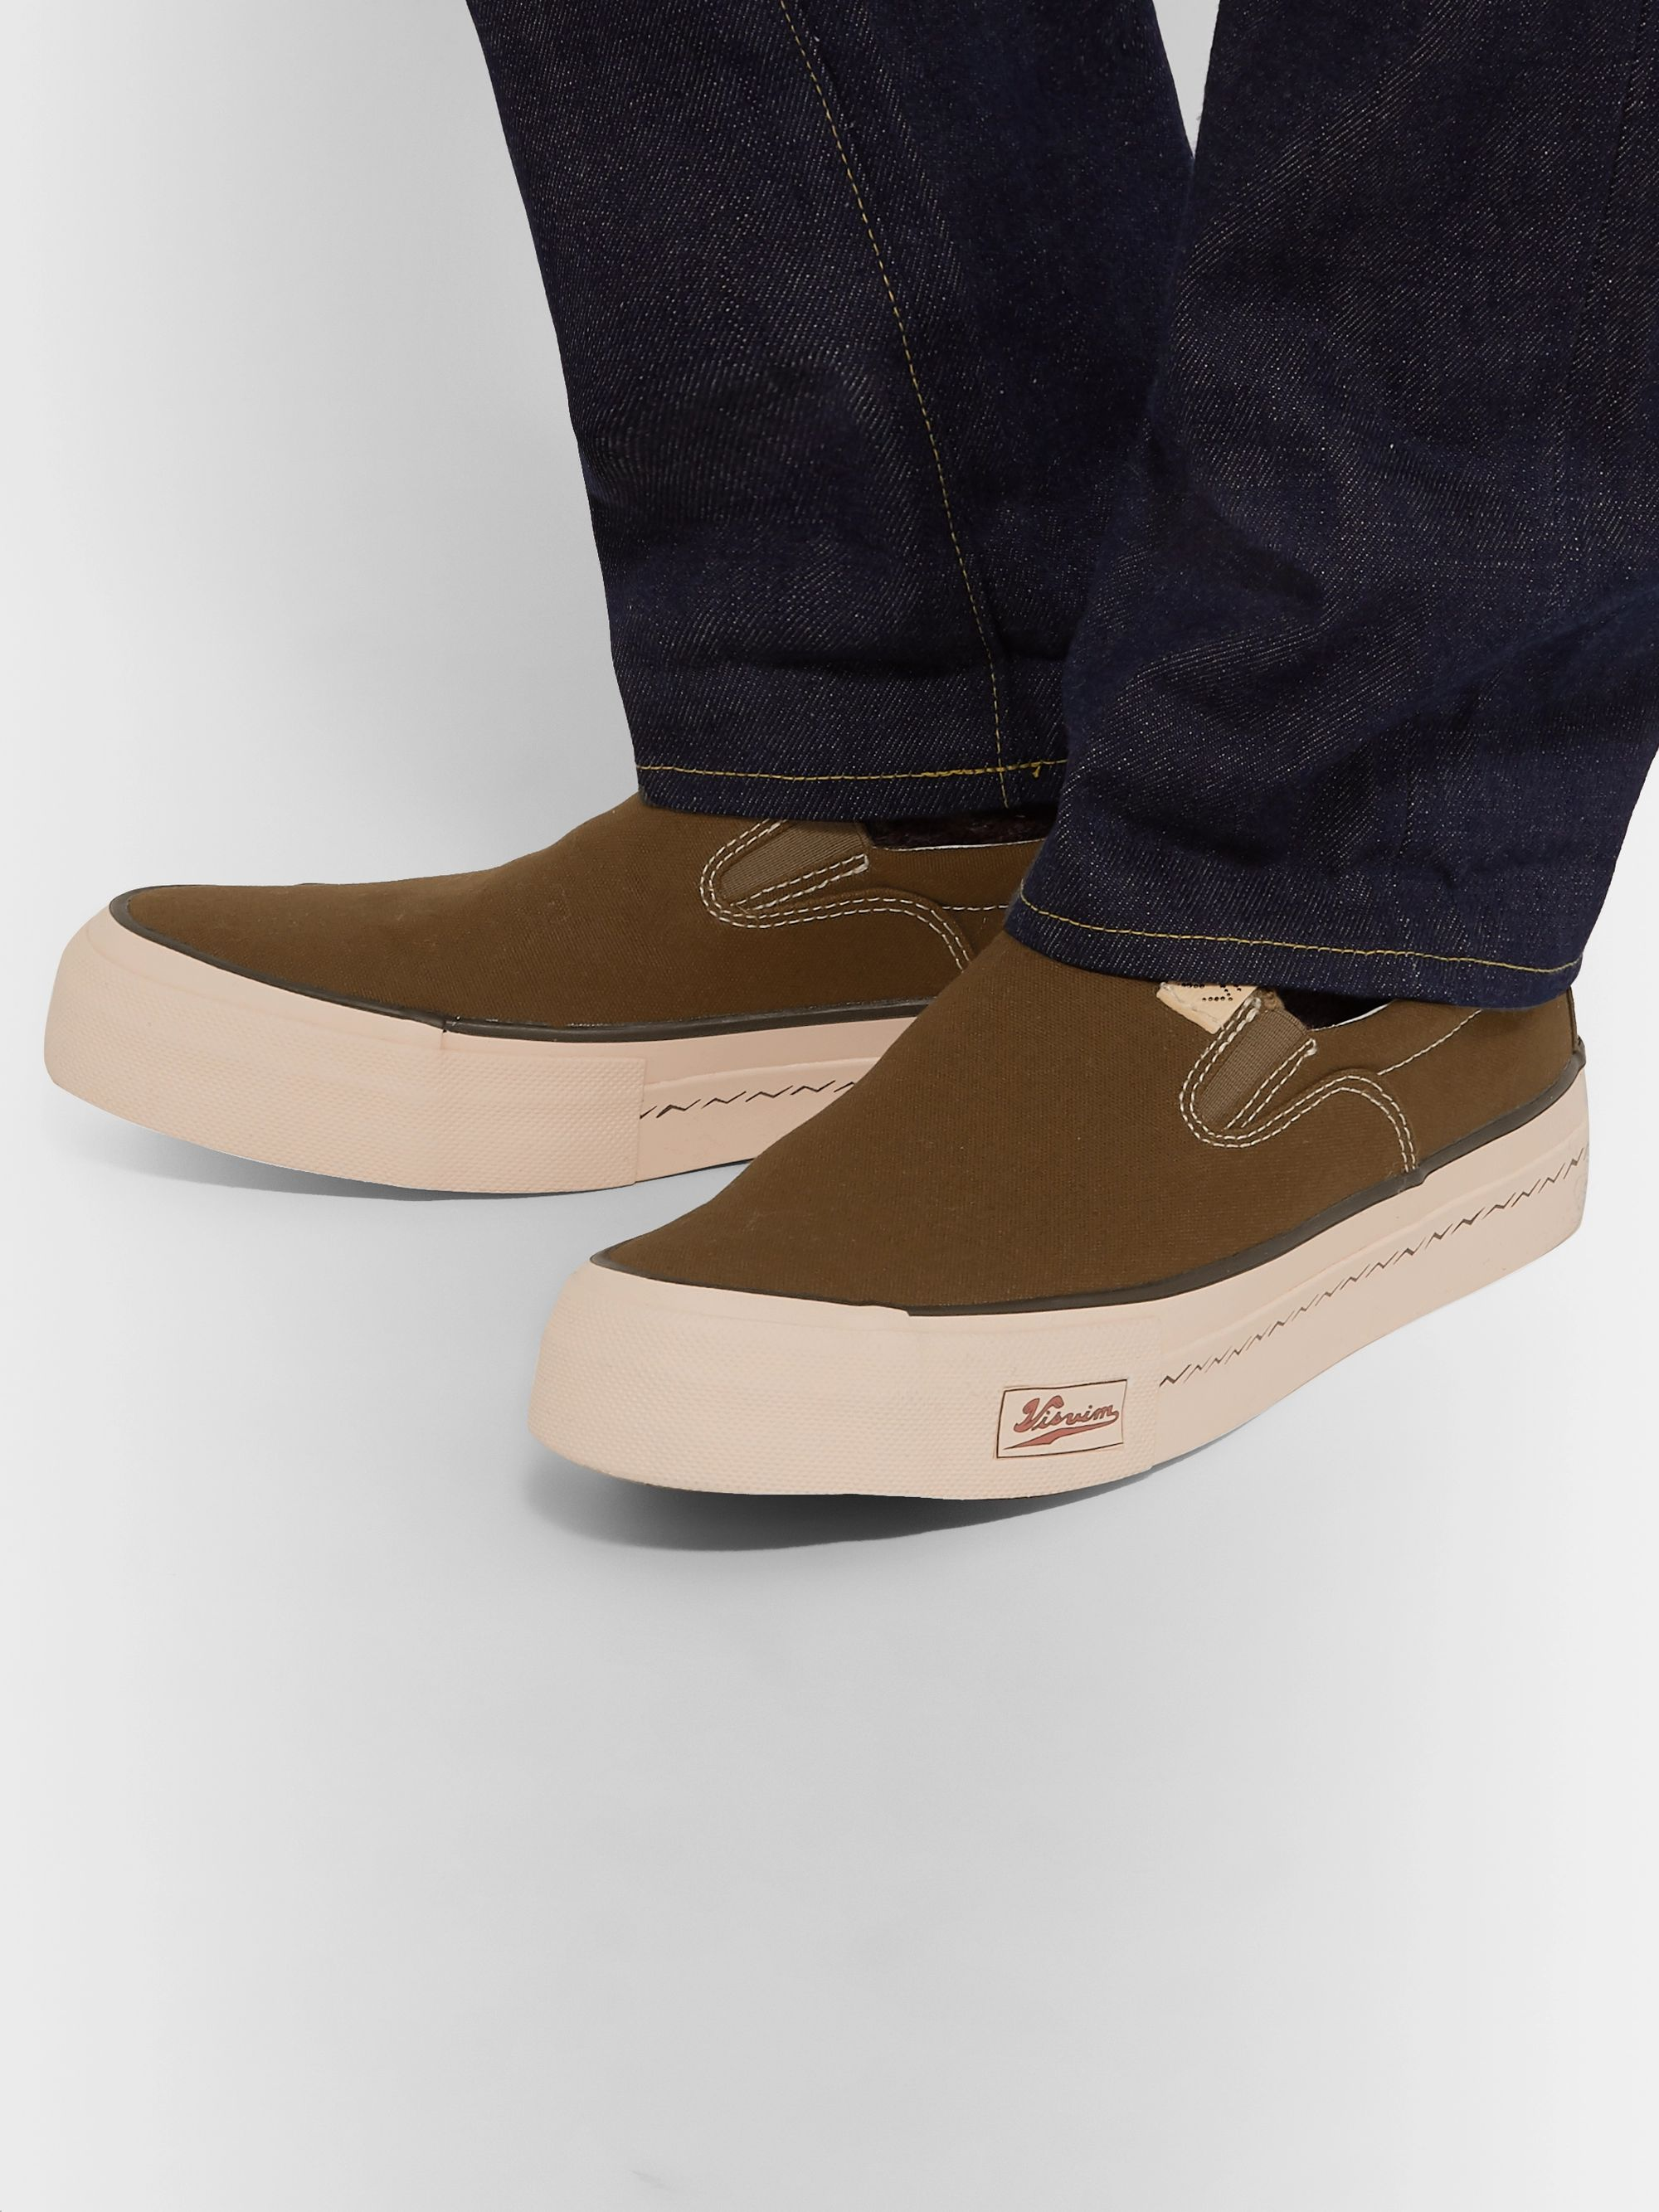 visvim Skagway Canvas Slip-On Sneakers